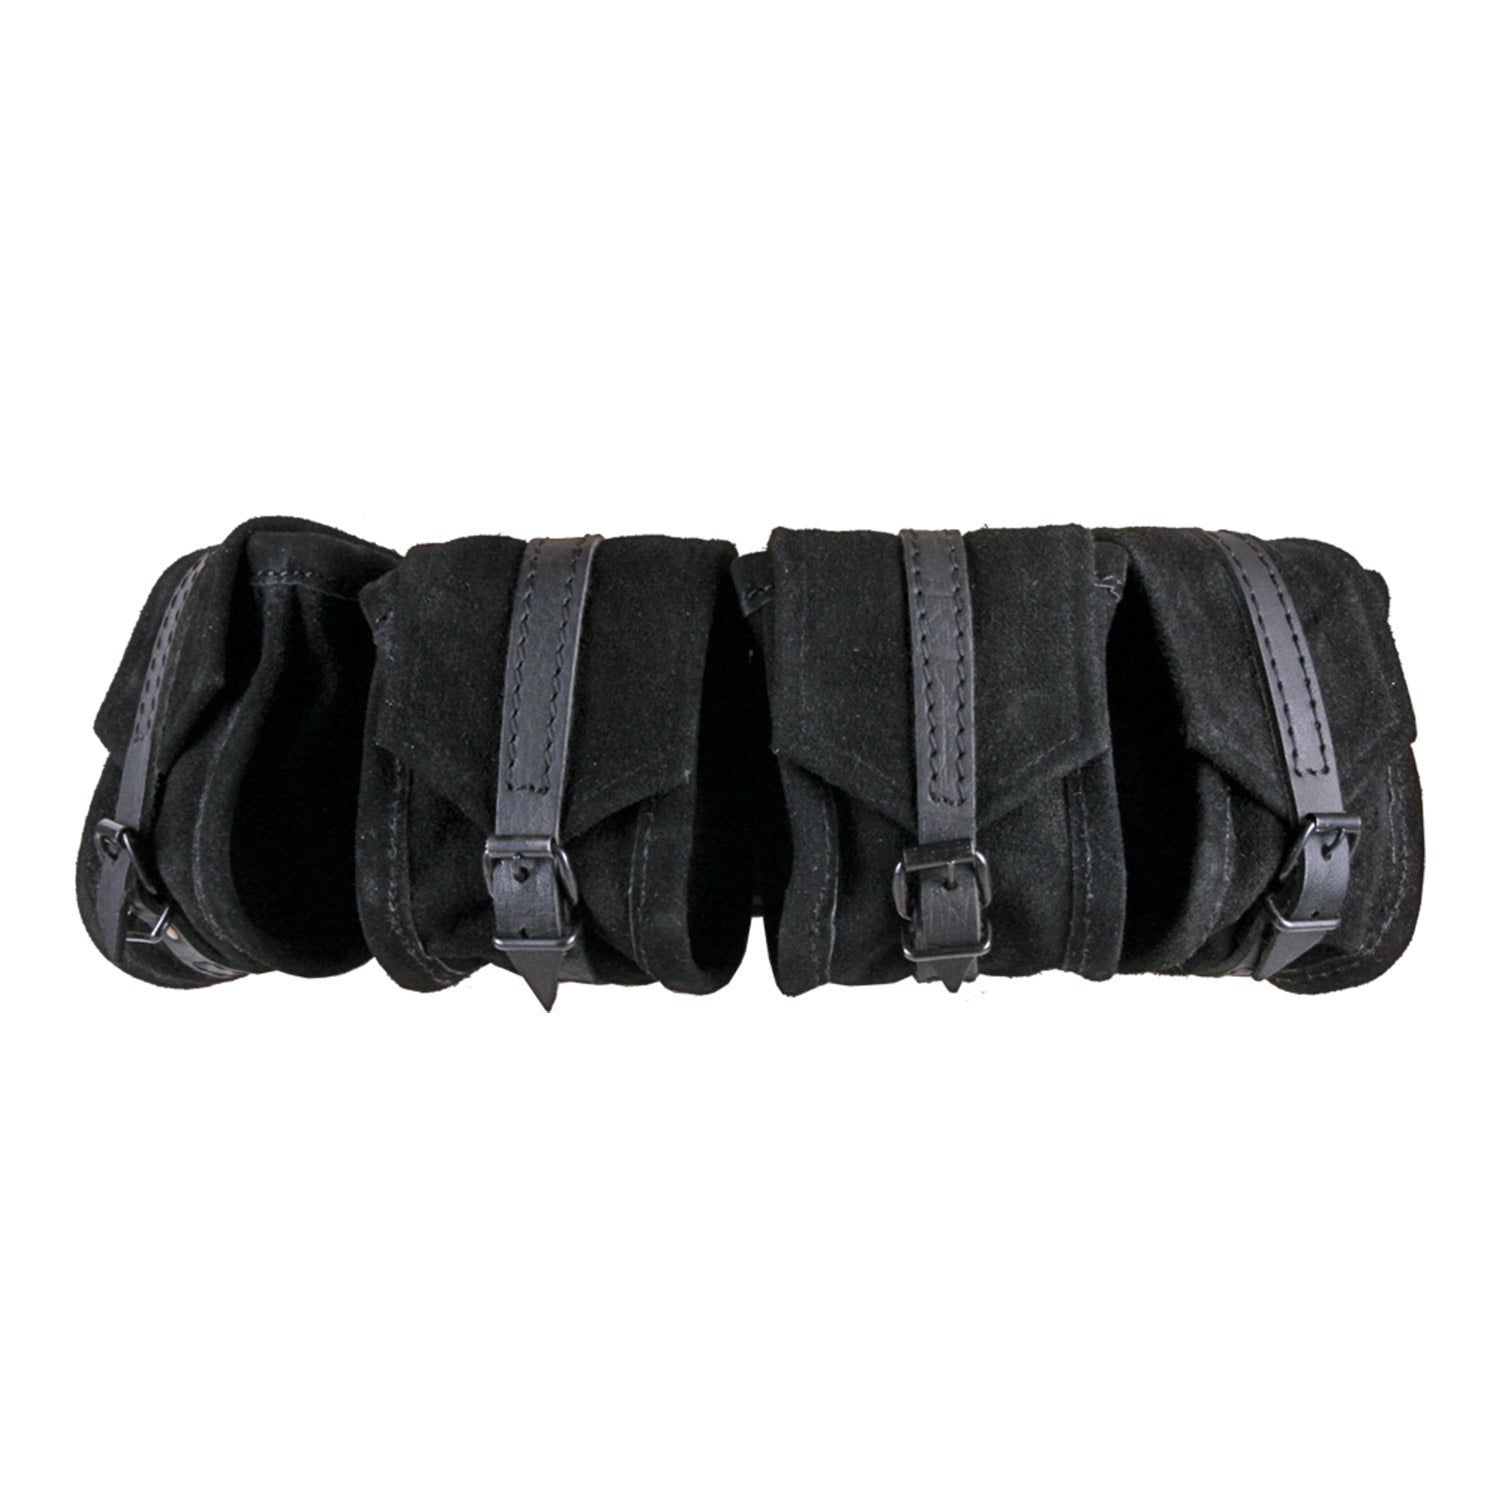 Friedhelm multi pouch